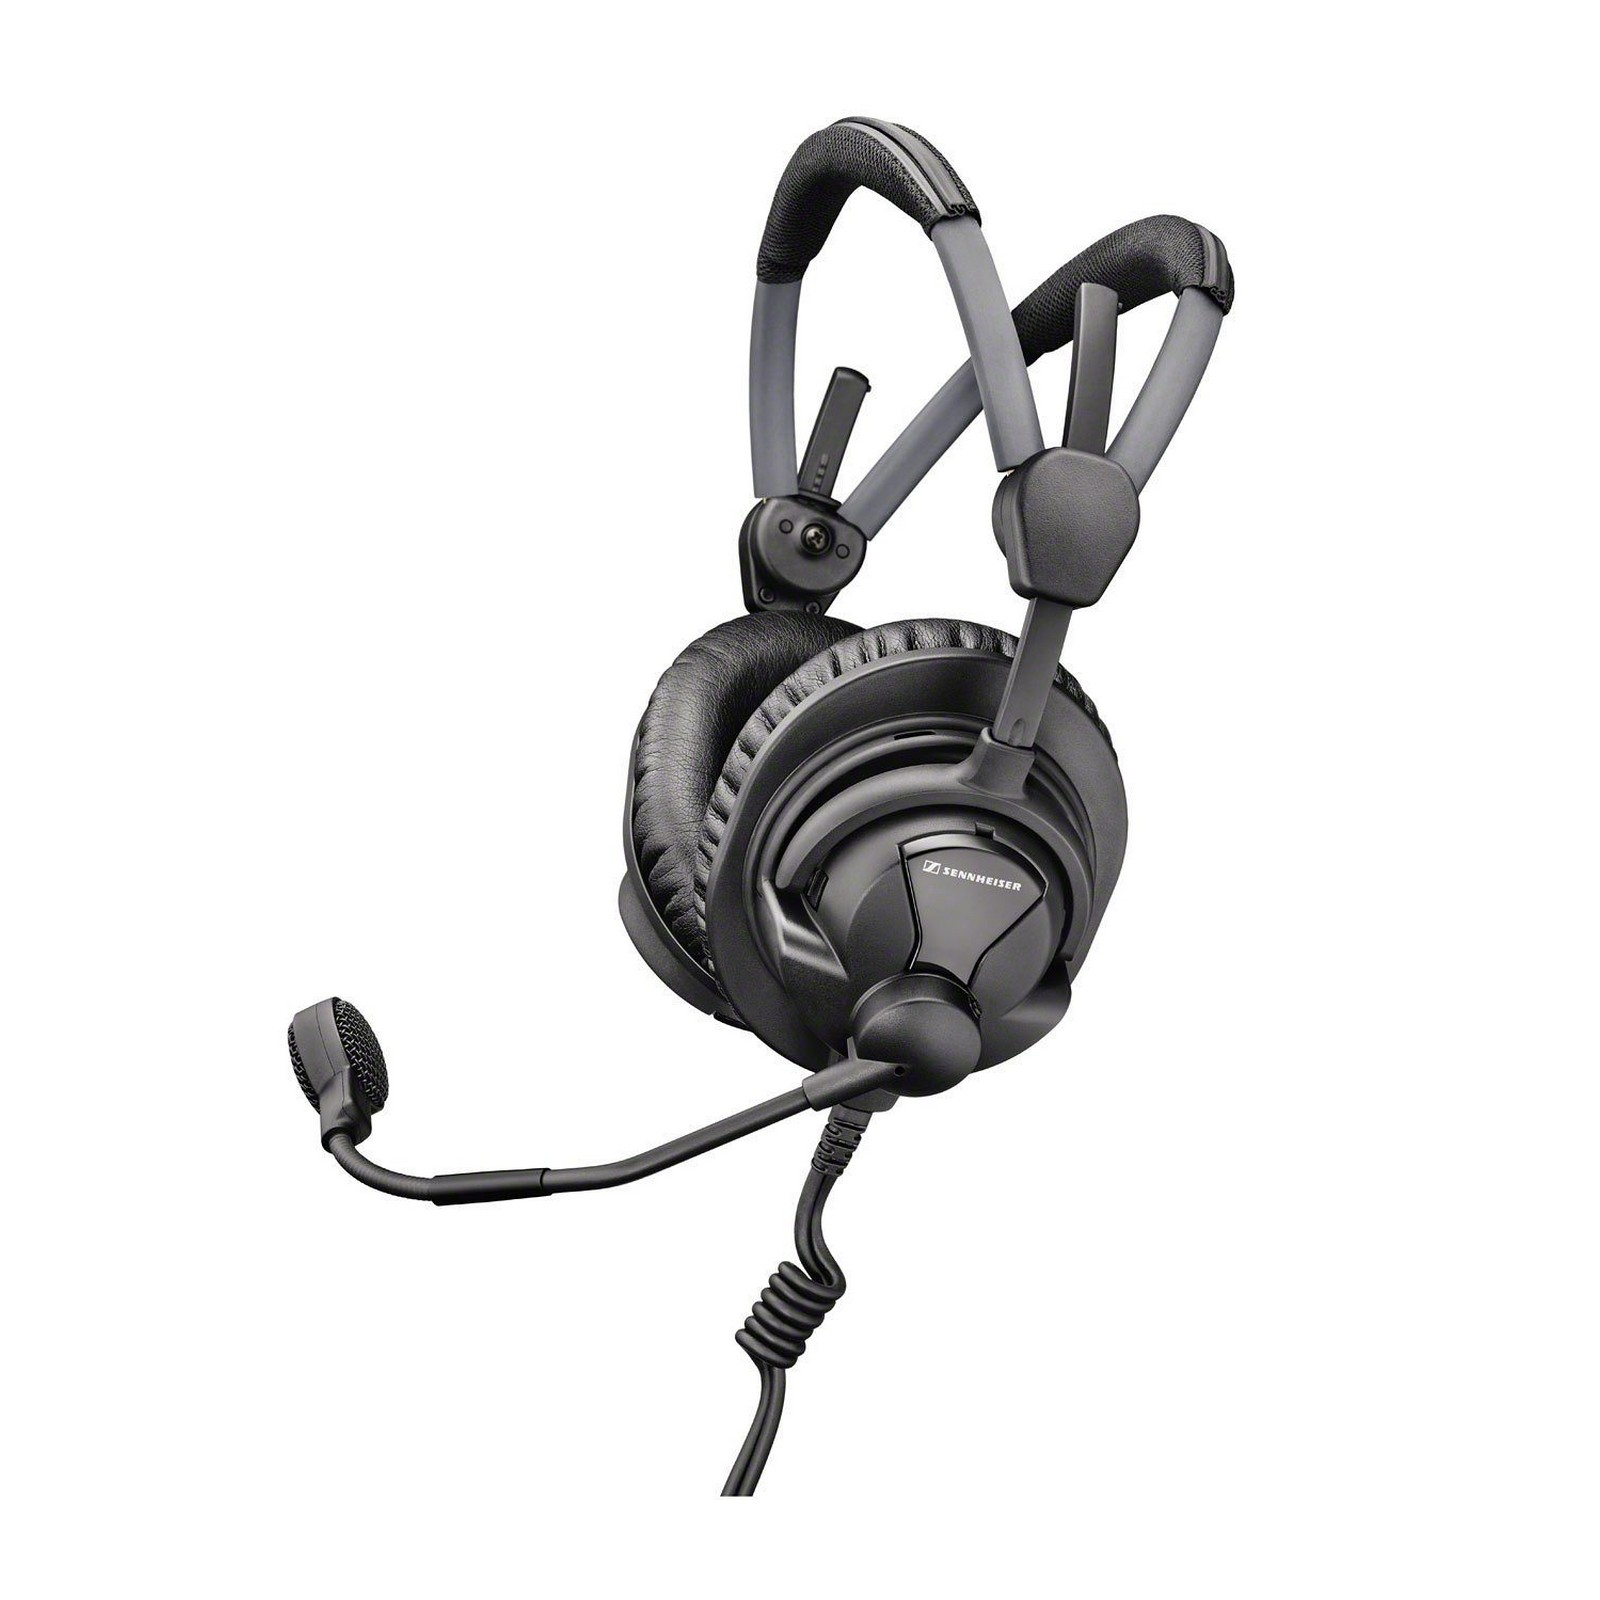 Sennheiser HMD 27 | Professional Broadcast Headset for Commentators and Engineers by Sennheiser